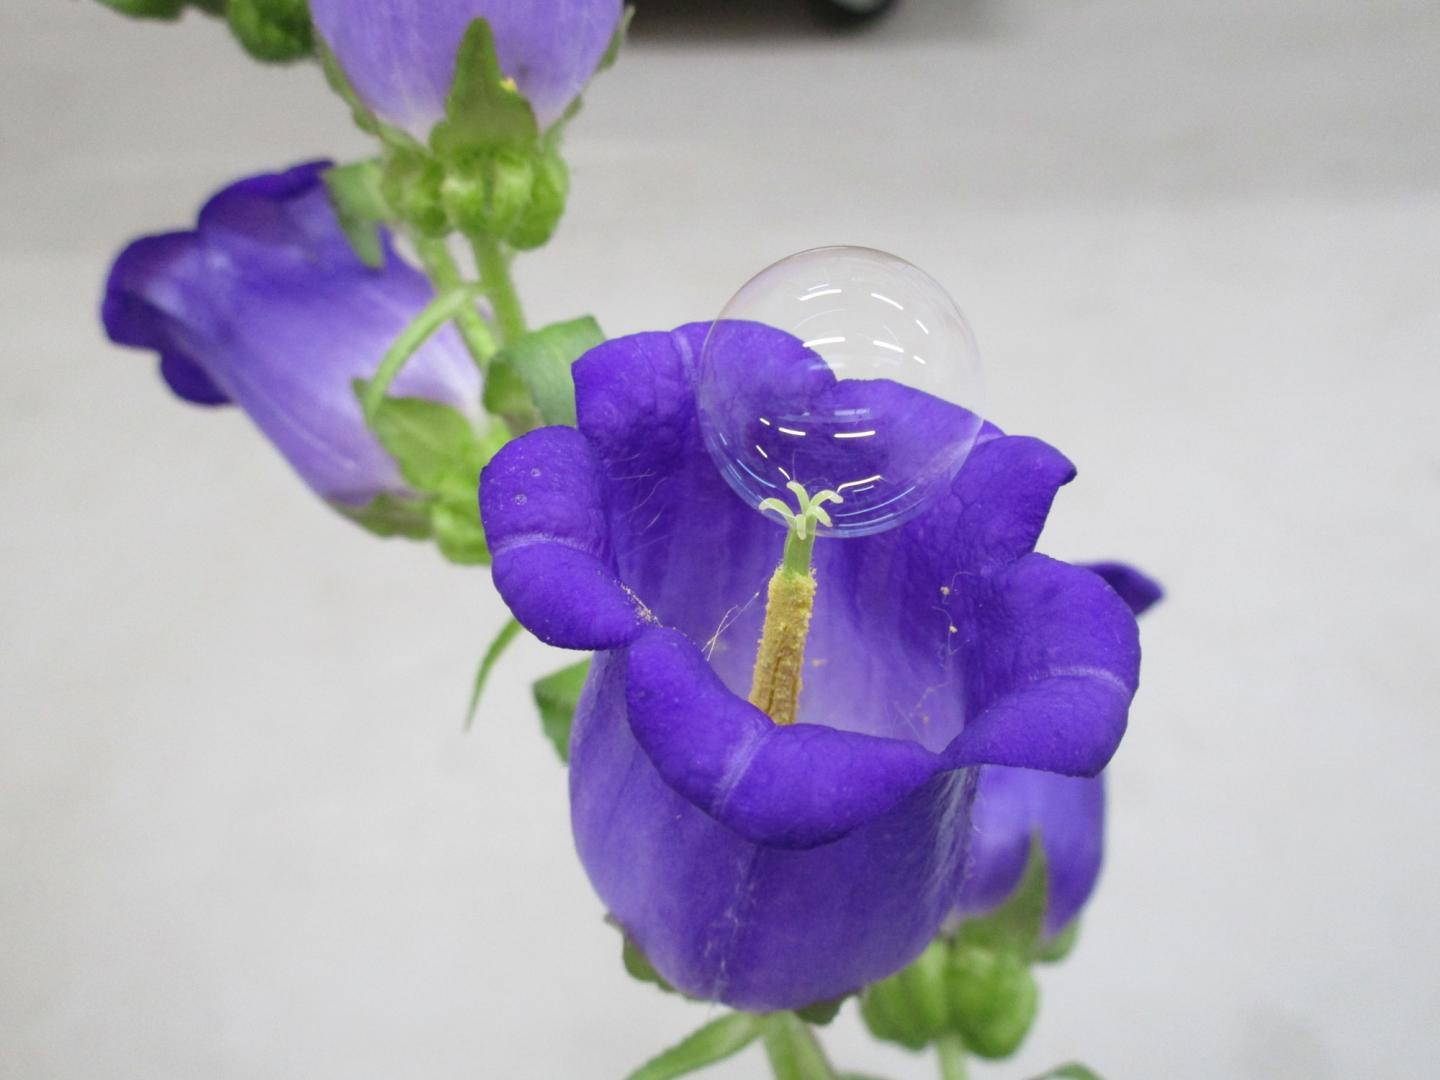 Soap Bubble Pollinating a Flower